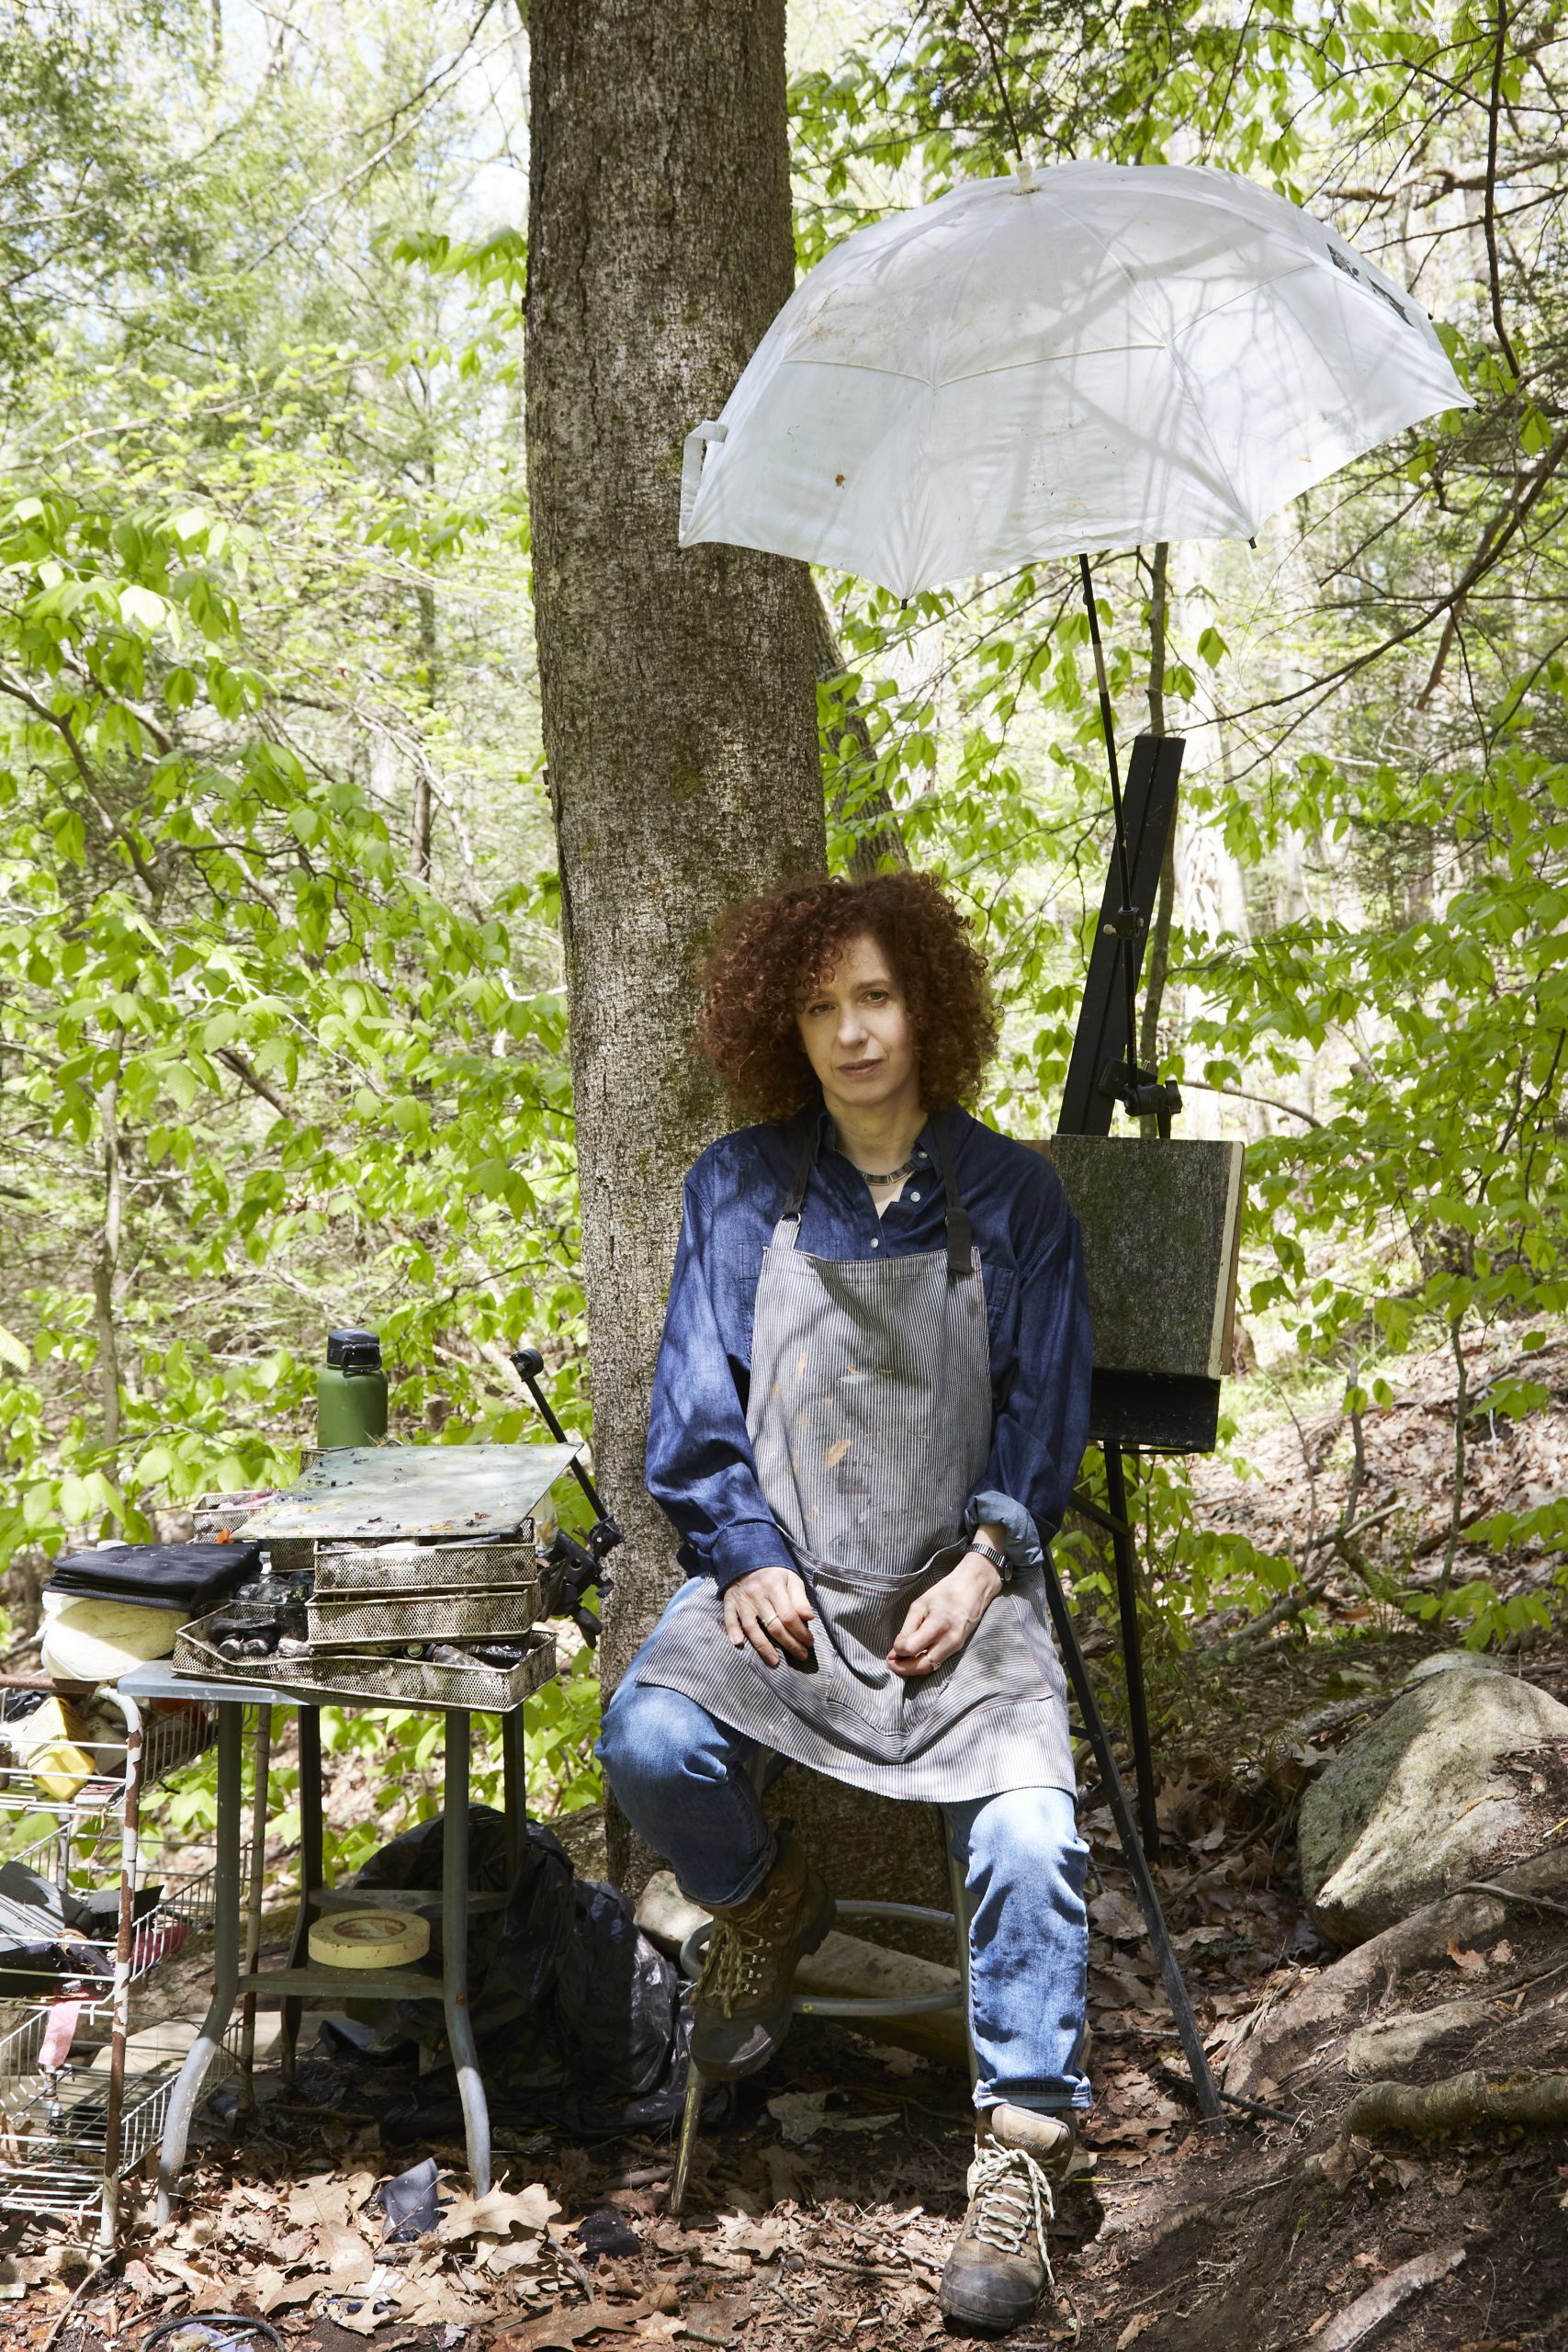 How Artist Ellen Altfest Built a Fully Functioning Studio Outdoors—and Manages to Resist Cell-Phone Distractions While Painting There